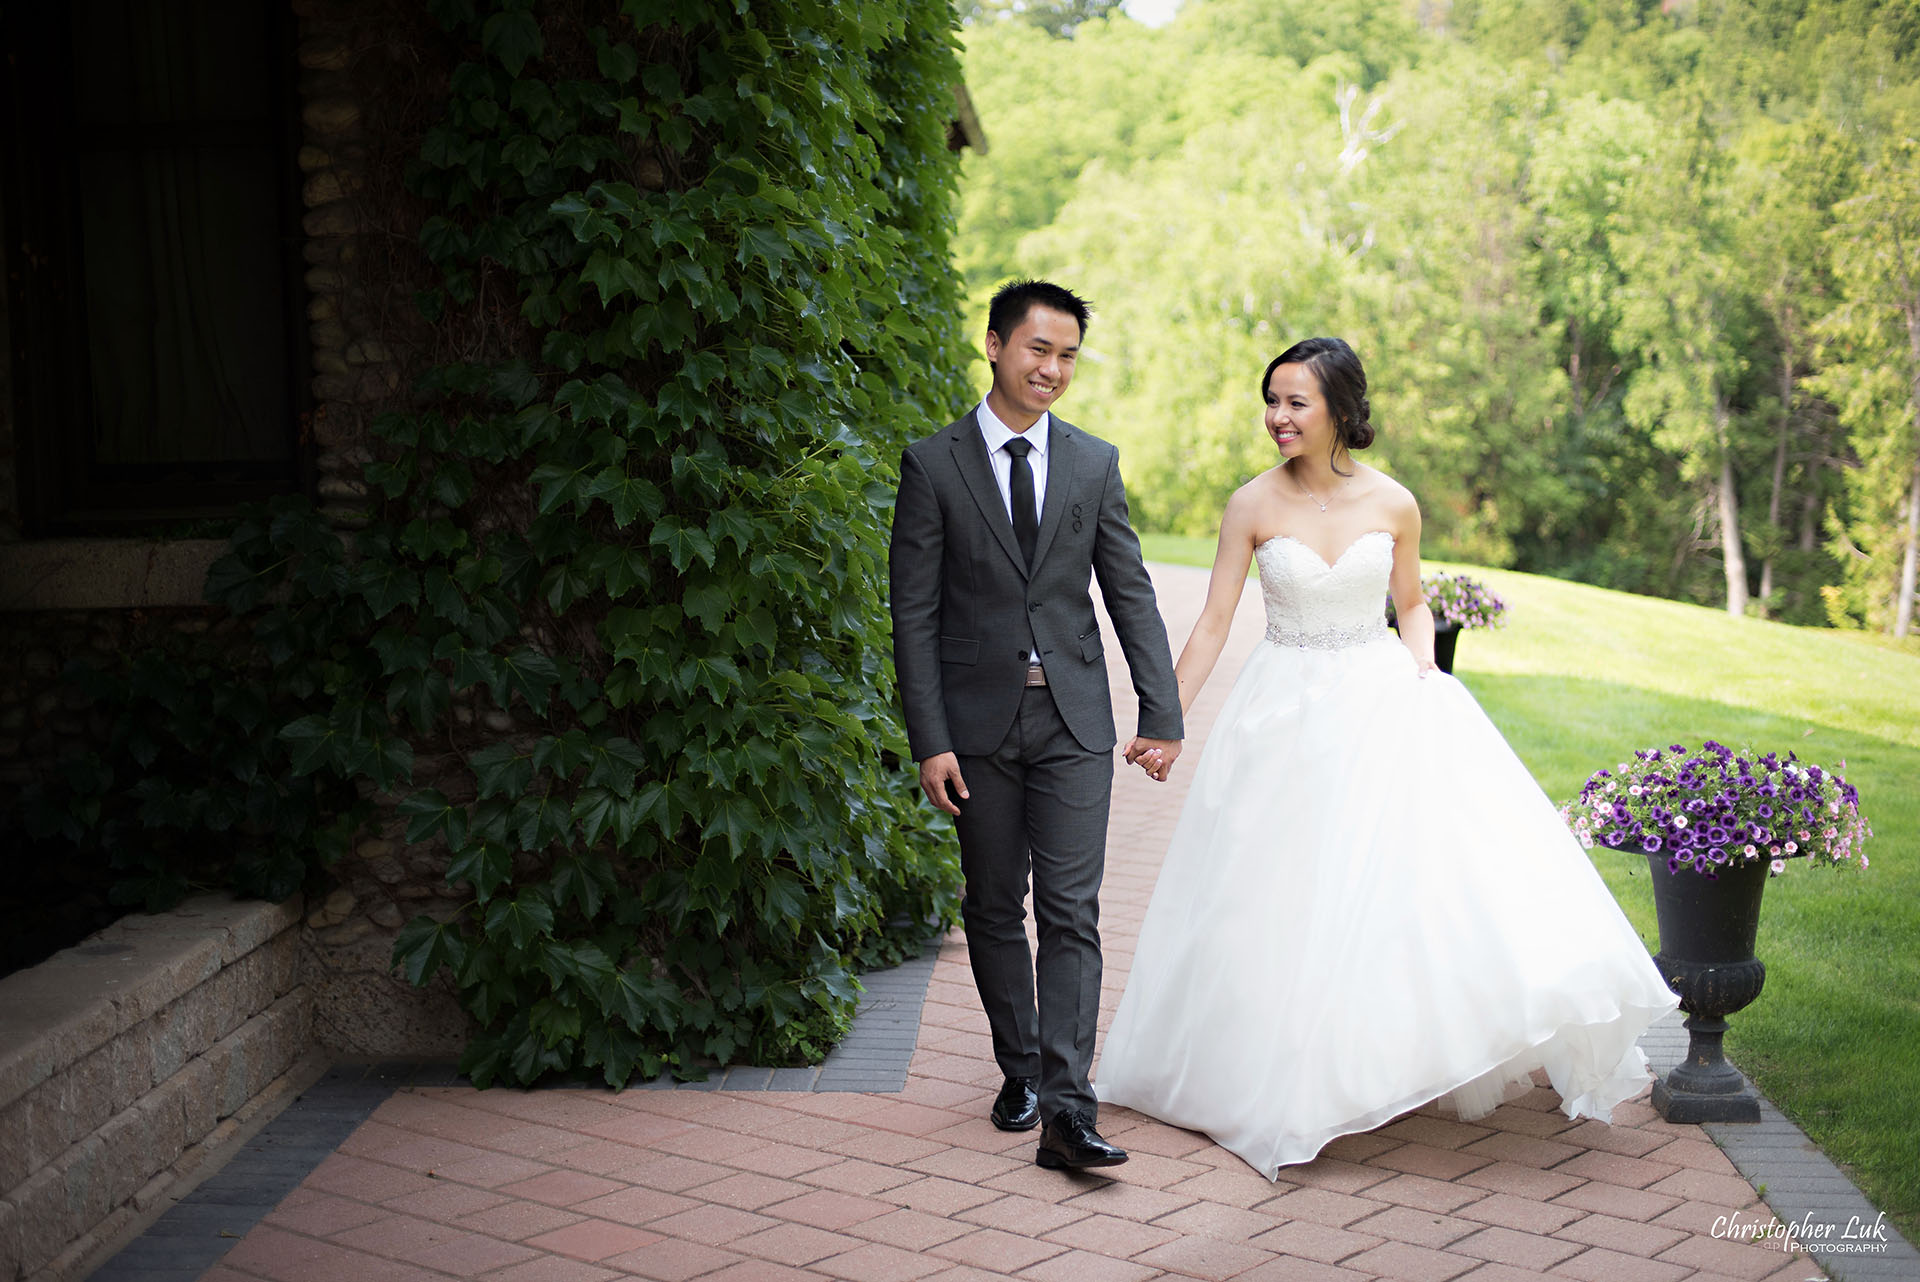 Christopher Luk 2015 - Karen and Scott's Wedding - Miller Lash House University Toronto Scarborough UTSC Outdoor Summer Ceremony Reception - Bride Groom Photojournalistic Candid Natural Relaxed Walking Path Small